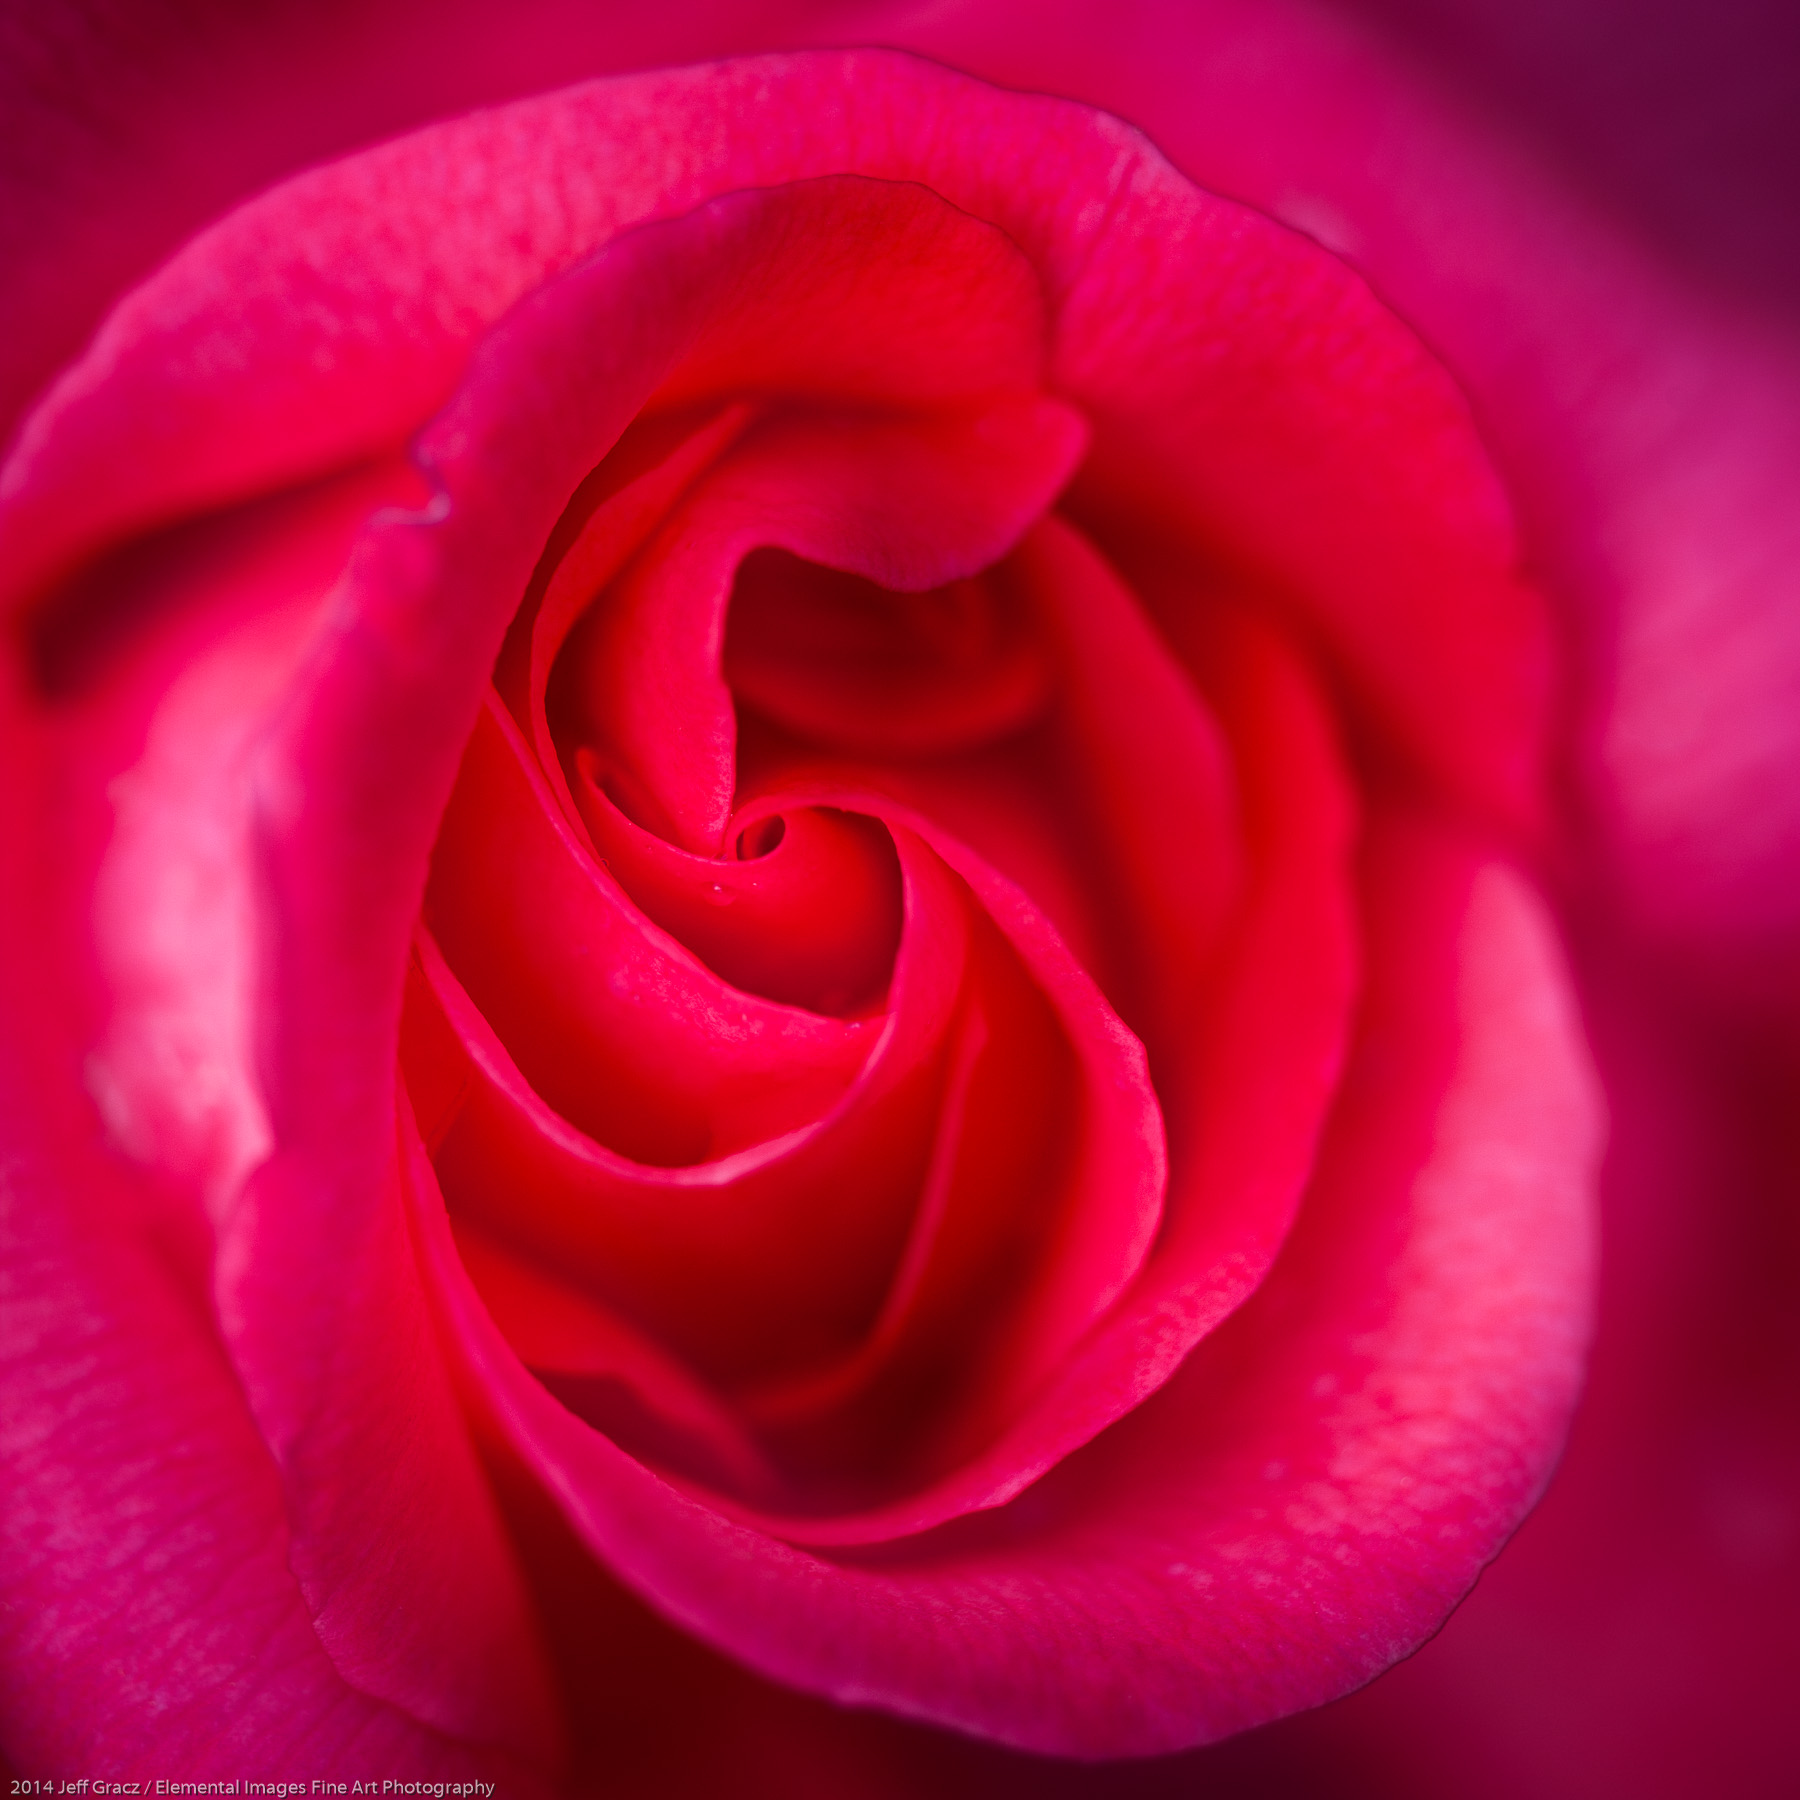 Roses LVII | Portland | OR | USA - © 2014 Jeff Gracz / Elemental Images Fine Art Photography - All Rights Reserved Worldwide